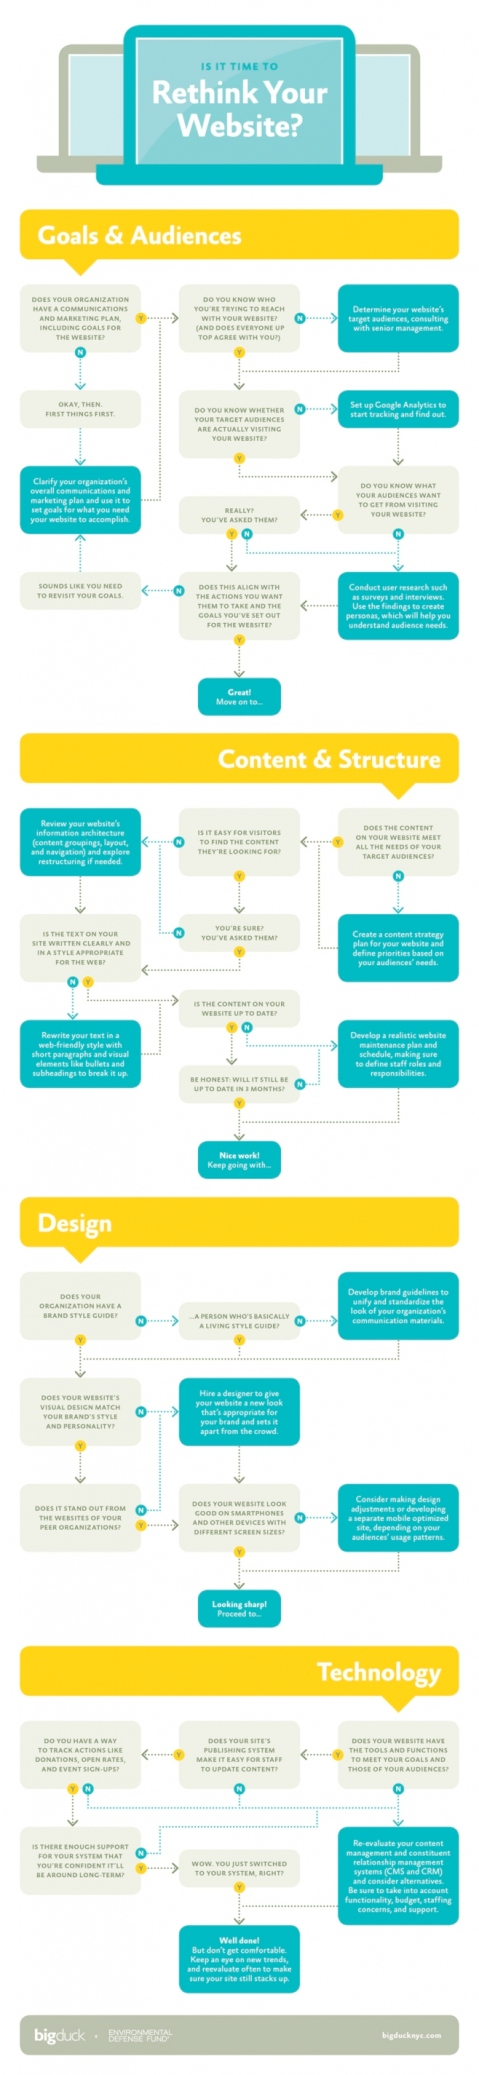 steps to take if you're planning a website redesign